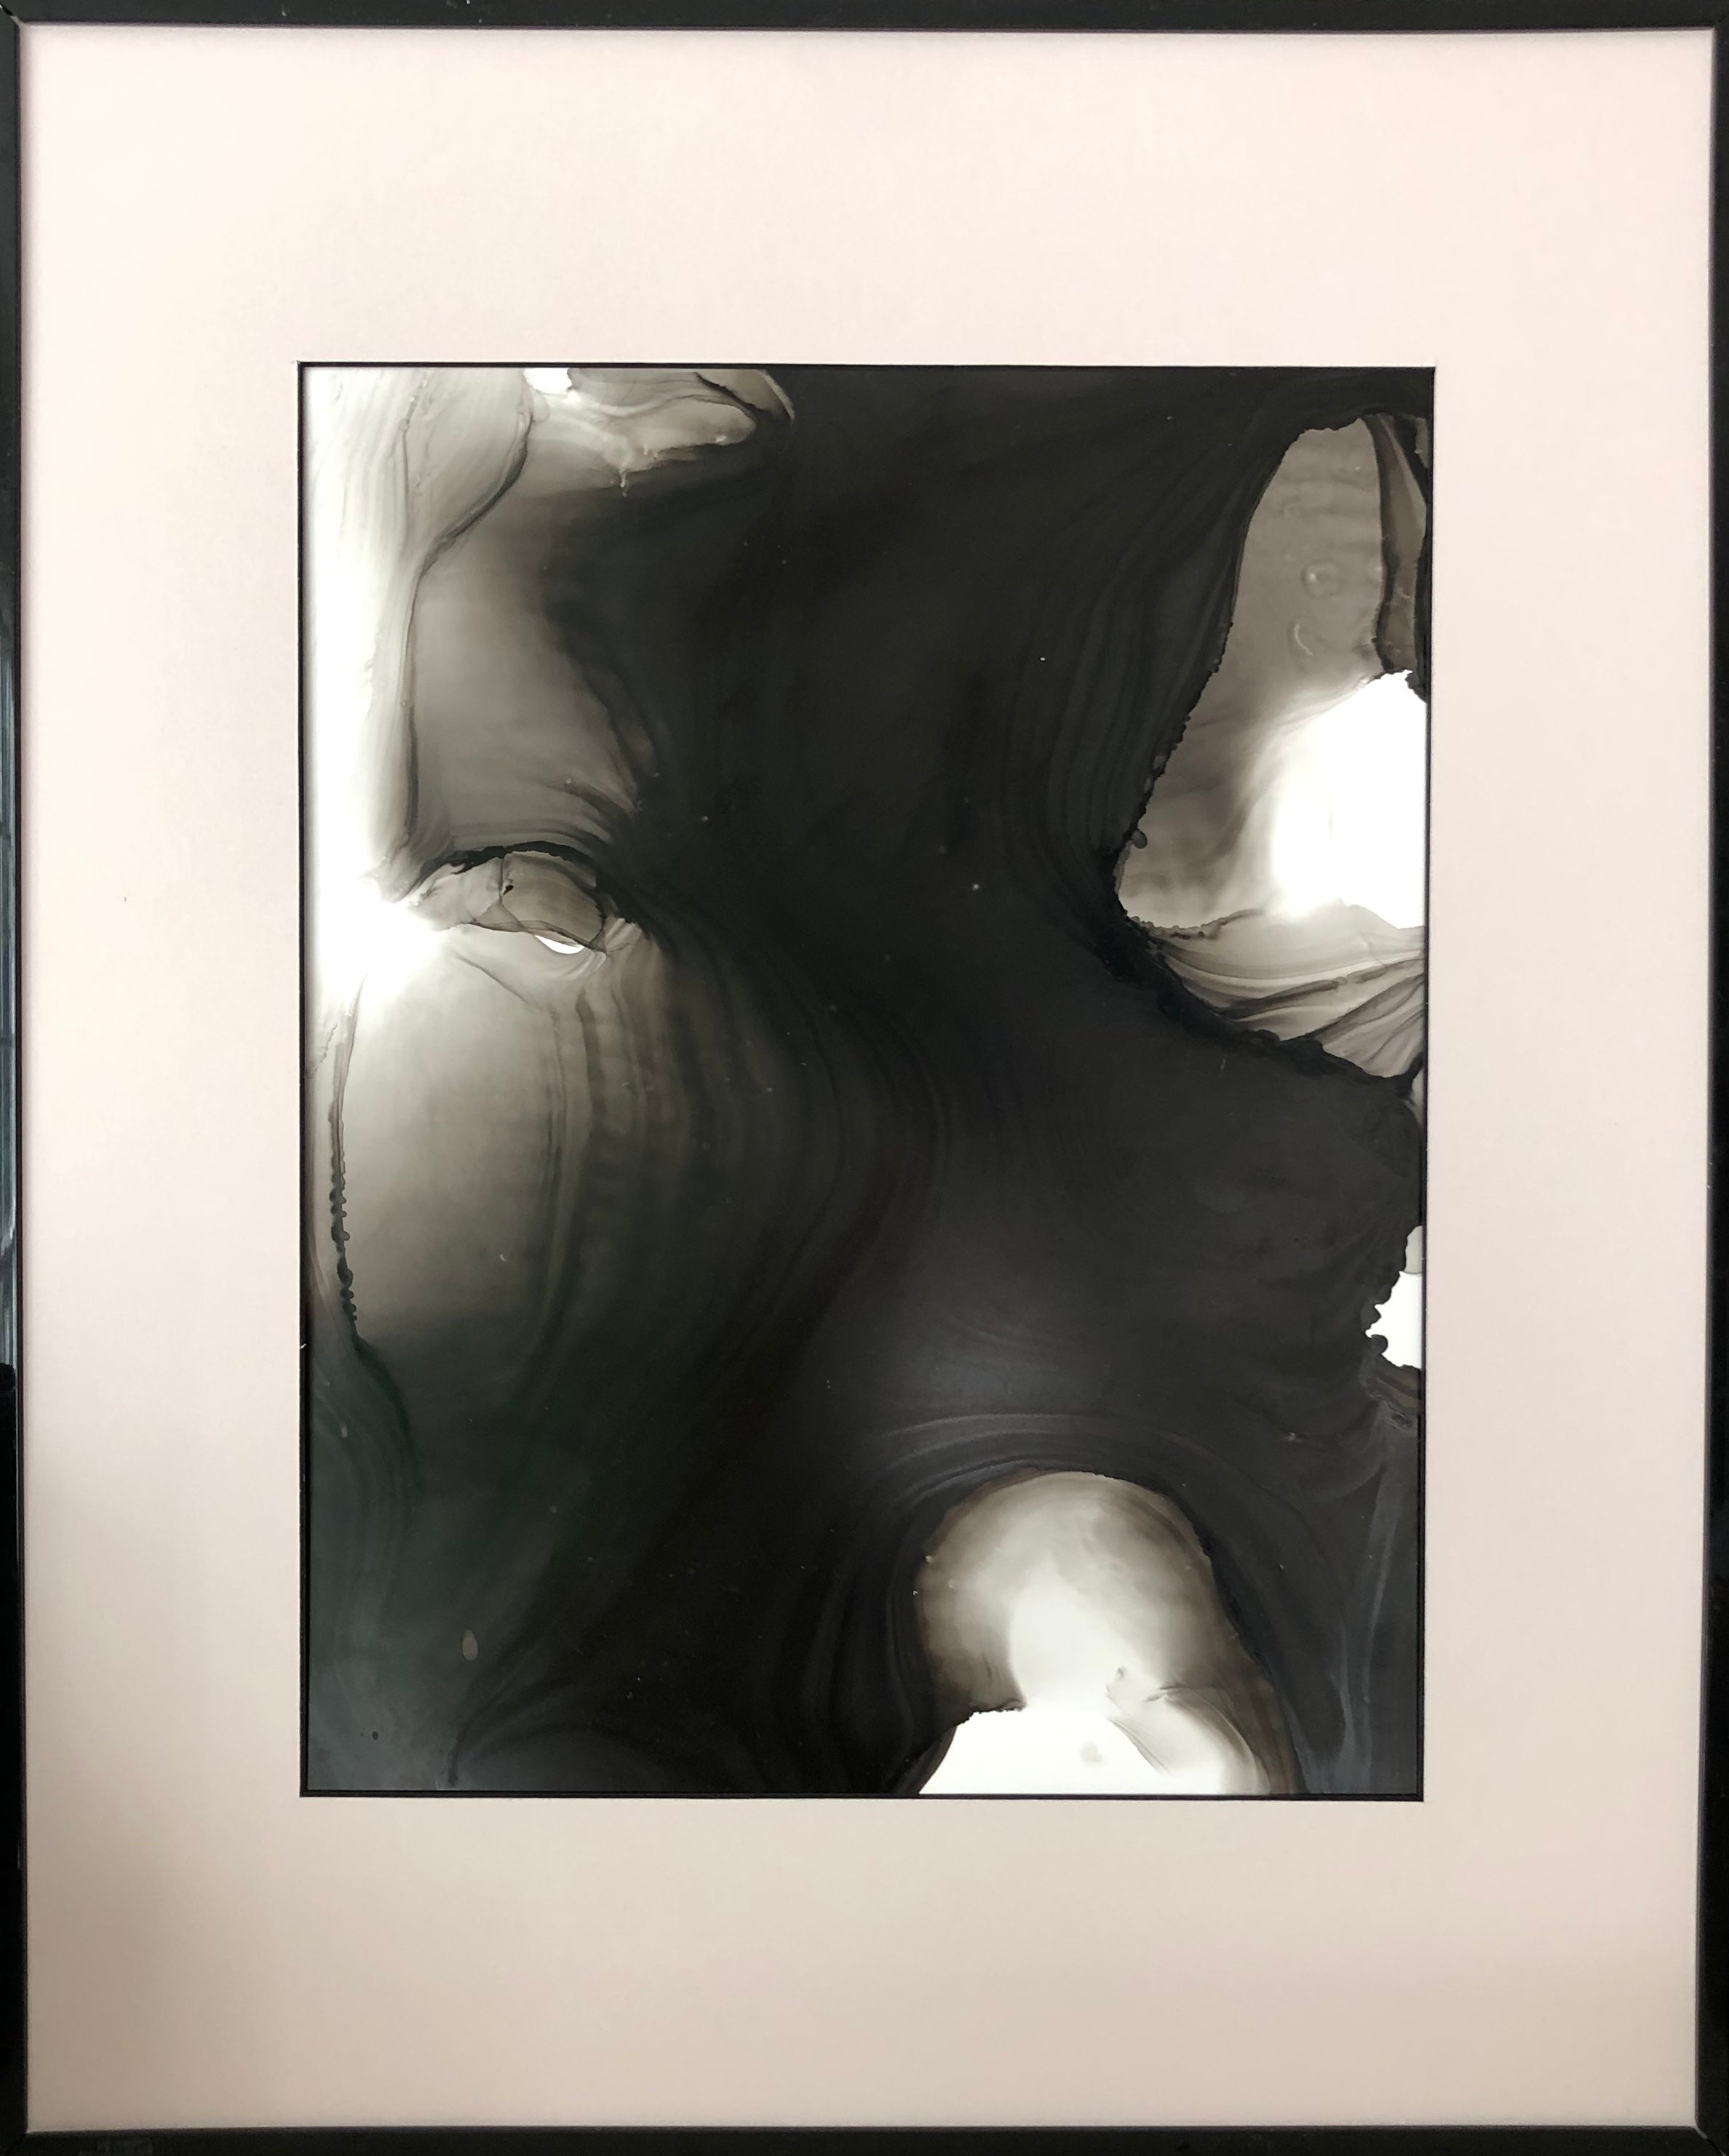 Other Worlds - abstraction art, made in black, grey, beige colors